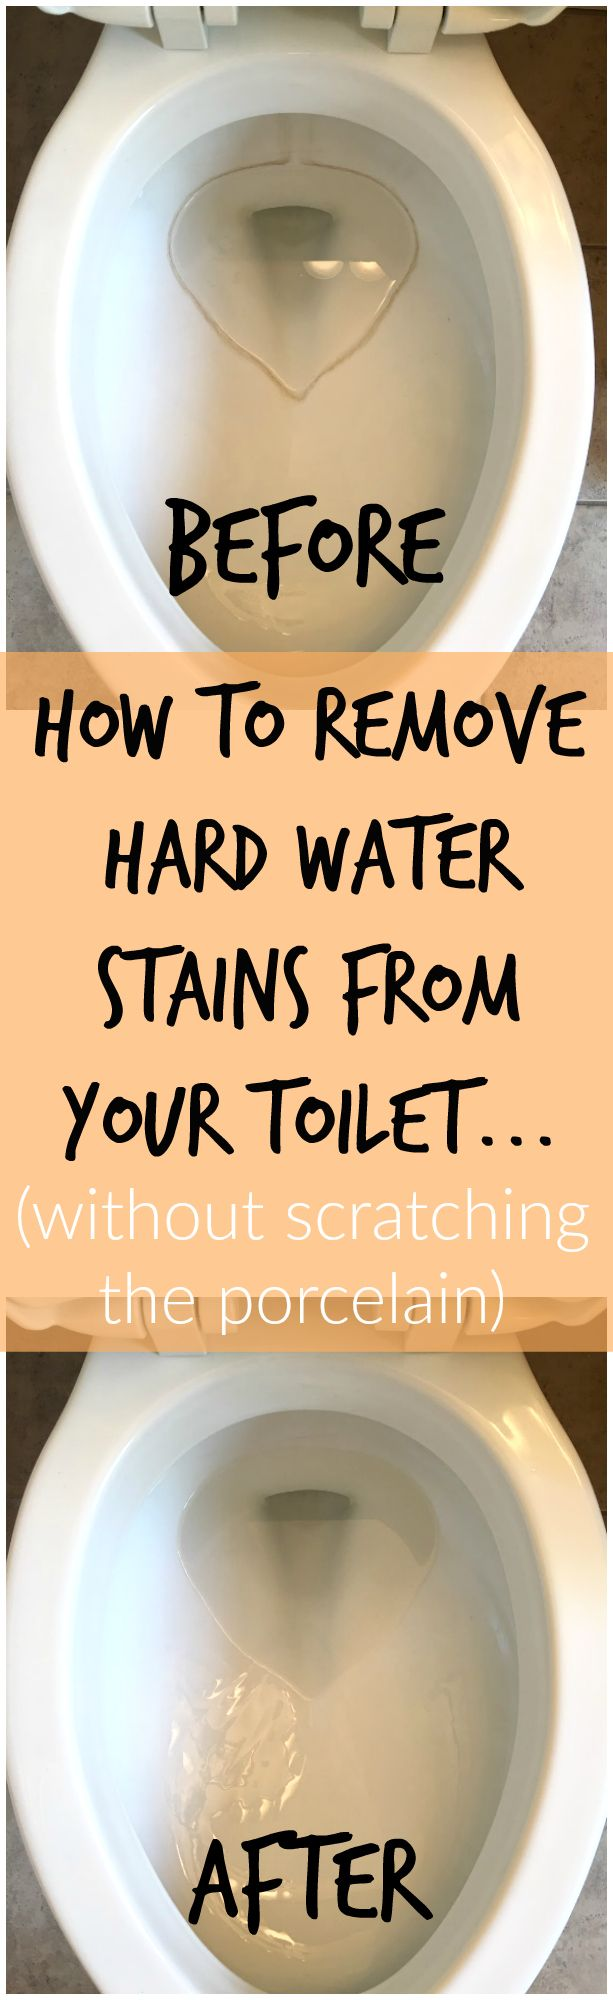 How to Remove Hard Water Stains from Toilets | ORGANIZE | Pinterest ...